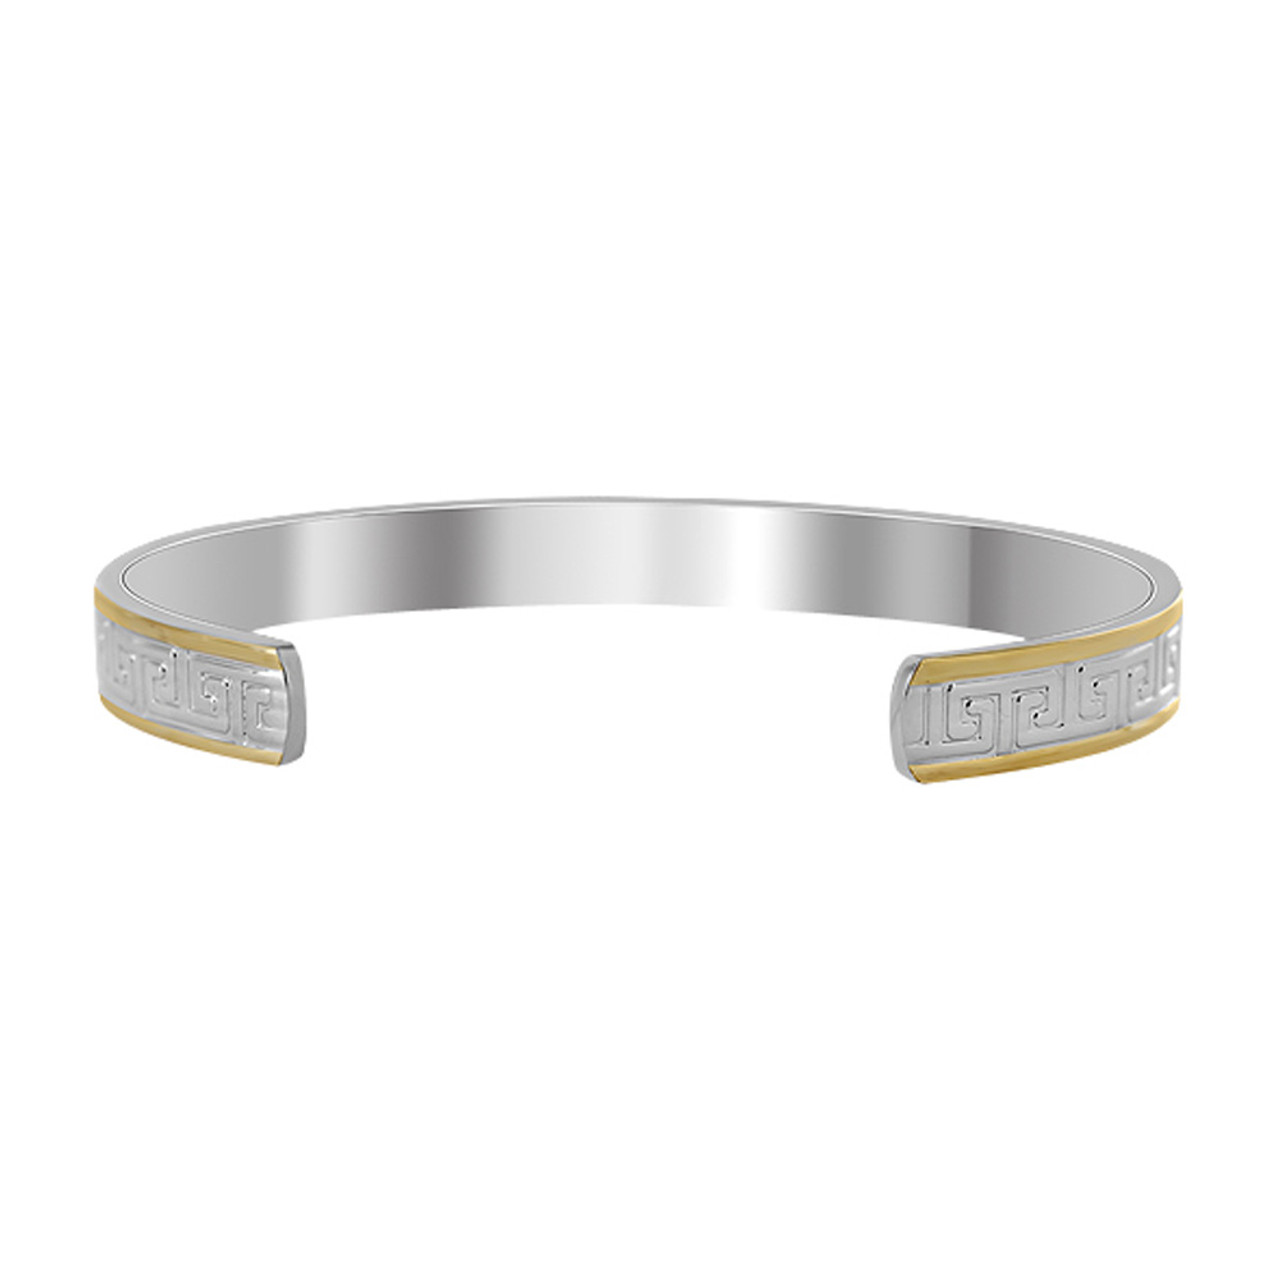 Two Tone Greek Design Engraved 8mm Wide Magnetic Therapy Cuff 6.5 inch Bracelet